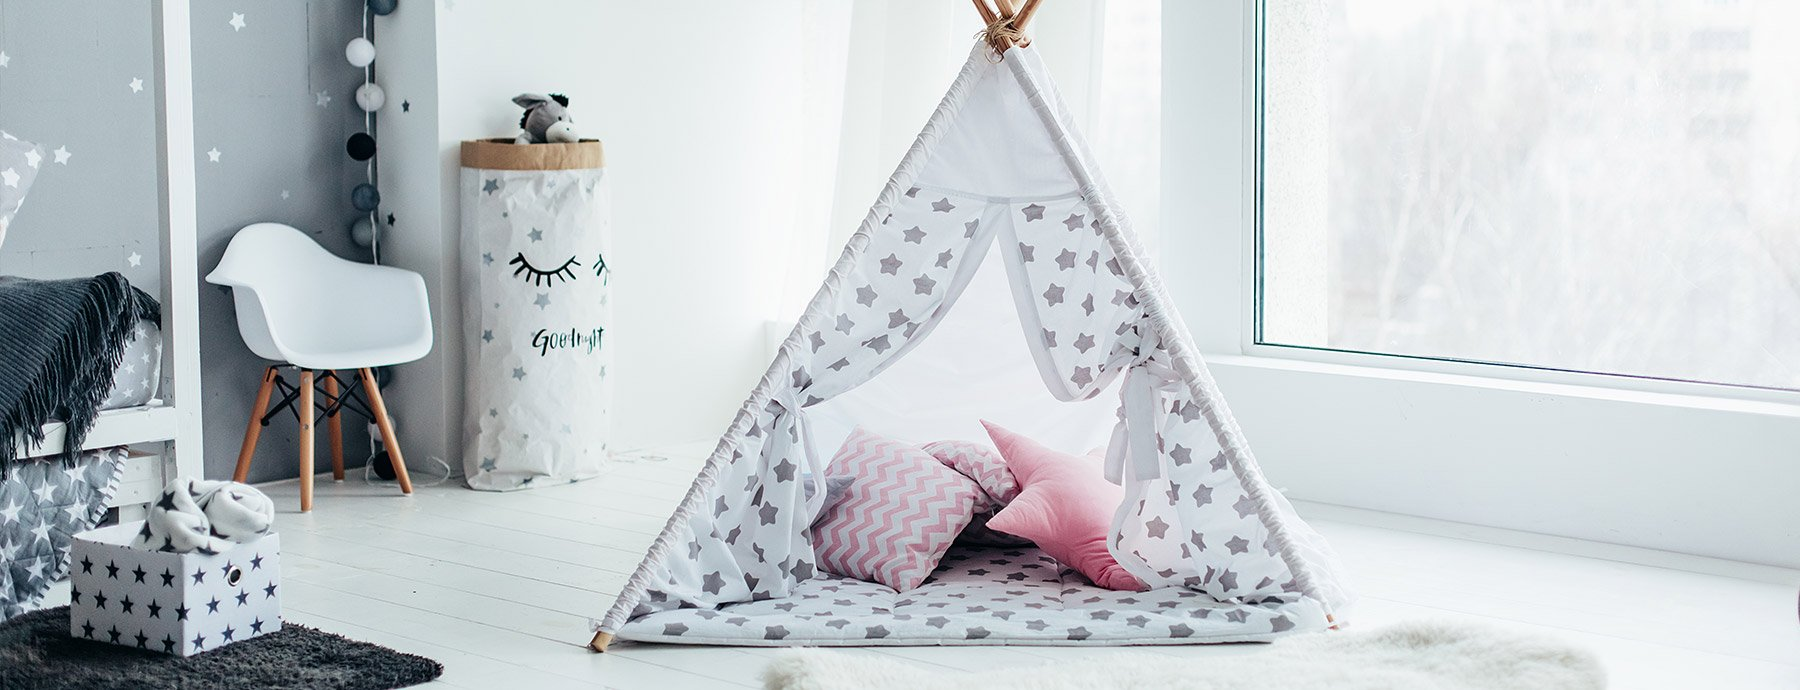 Kids Teepee And Tent How to choose the best option? & Kids Teepee And Tent | How to choose the best option?